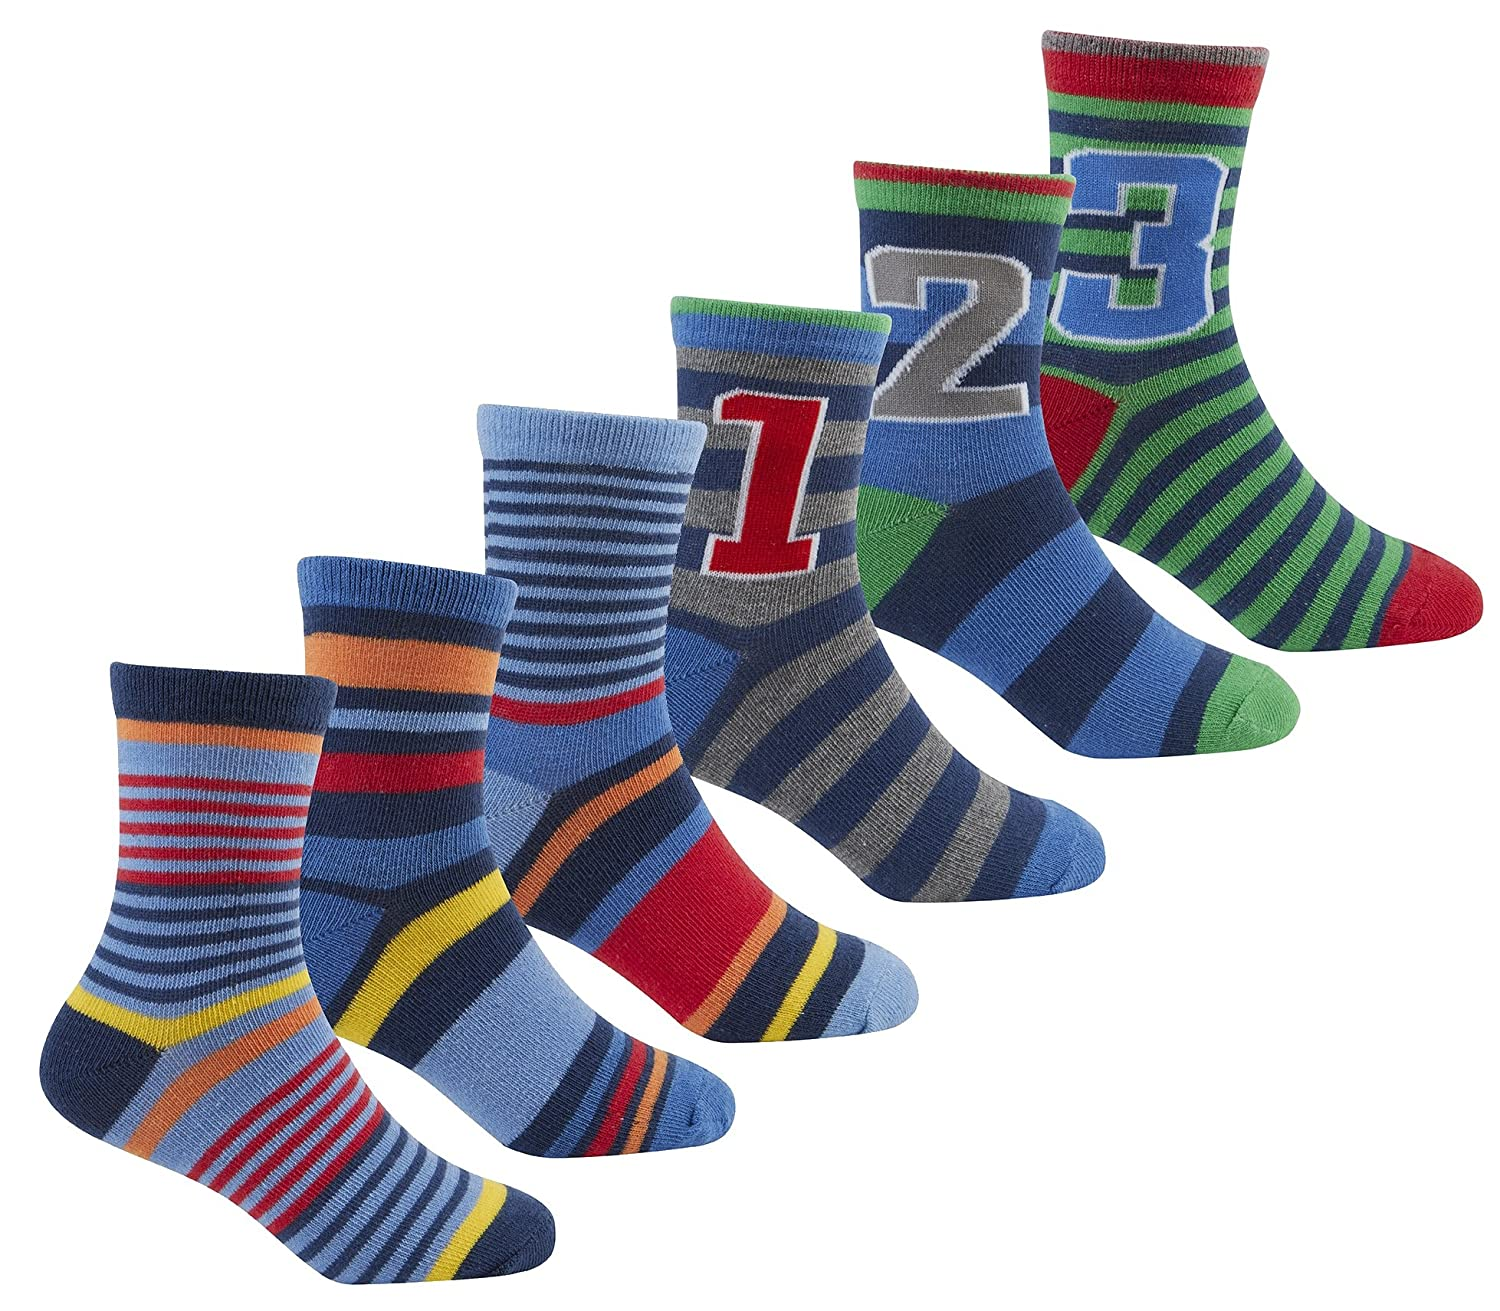 Zest Boys Cotton Rich Socks with Stripes & 1 2 3 Numbers